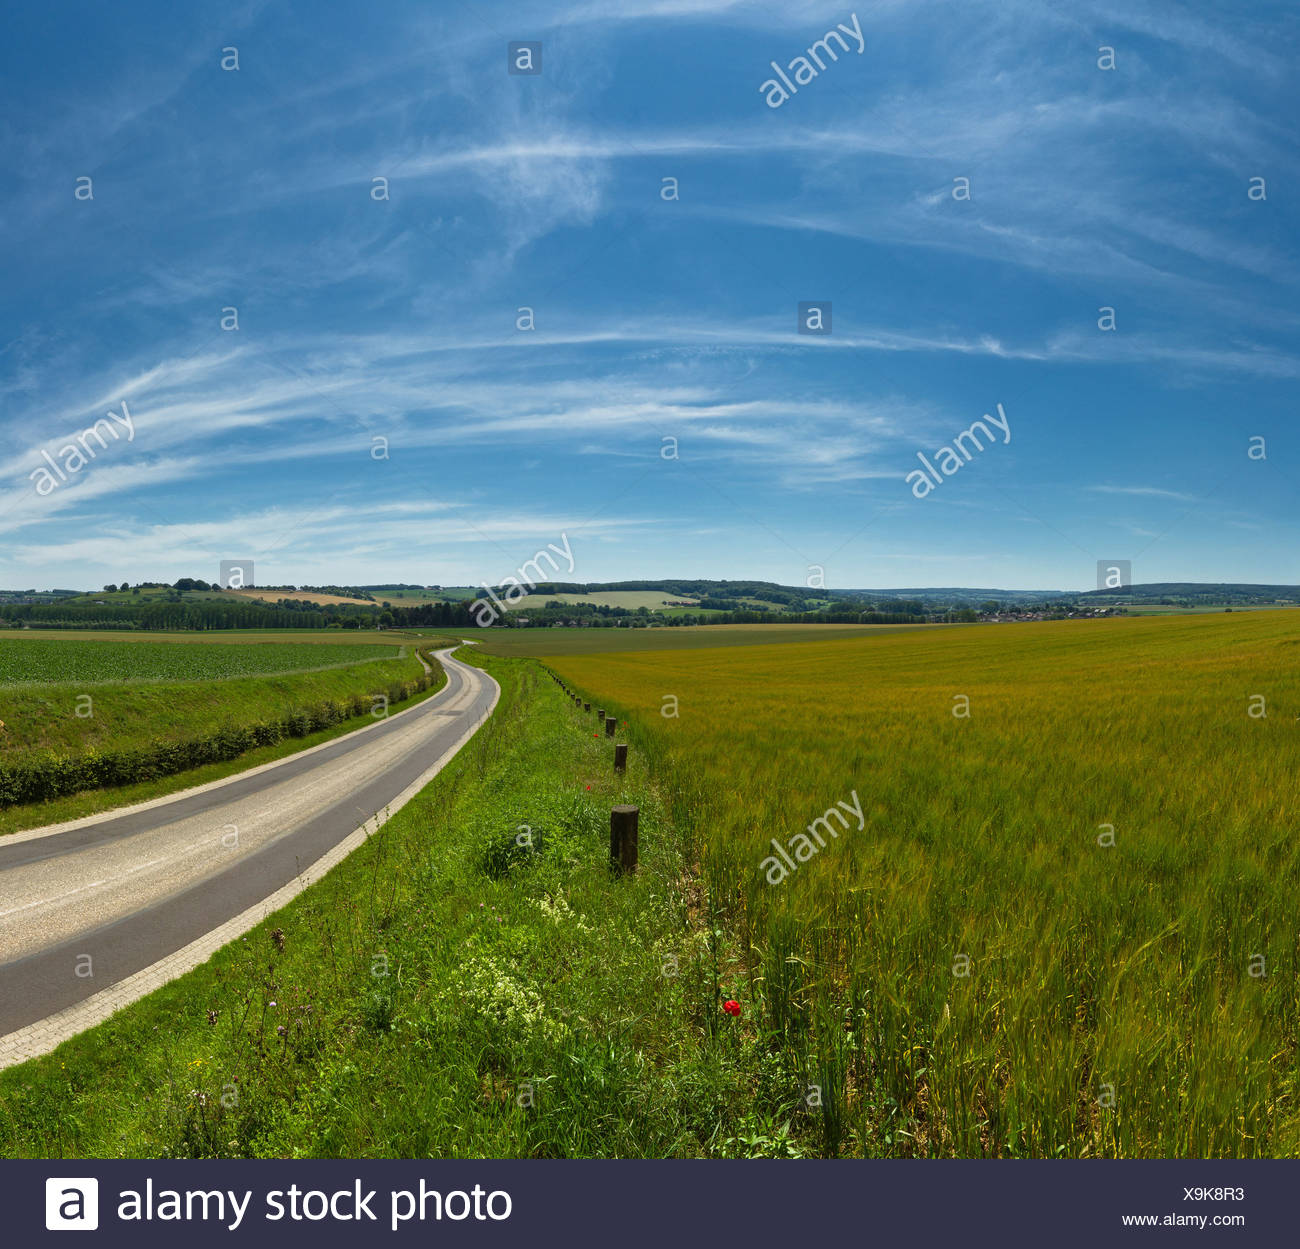 Netherlands, Holland, Europe, Gulpen, Hilly, Hill, country, landscape, field, meadow, summer, road, hills, - Stock Image